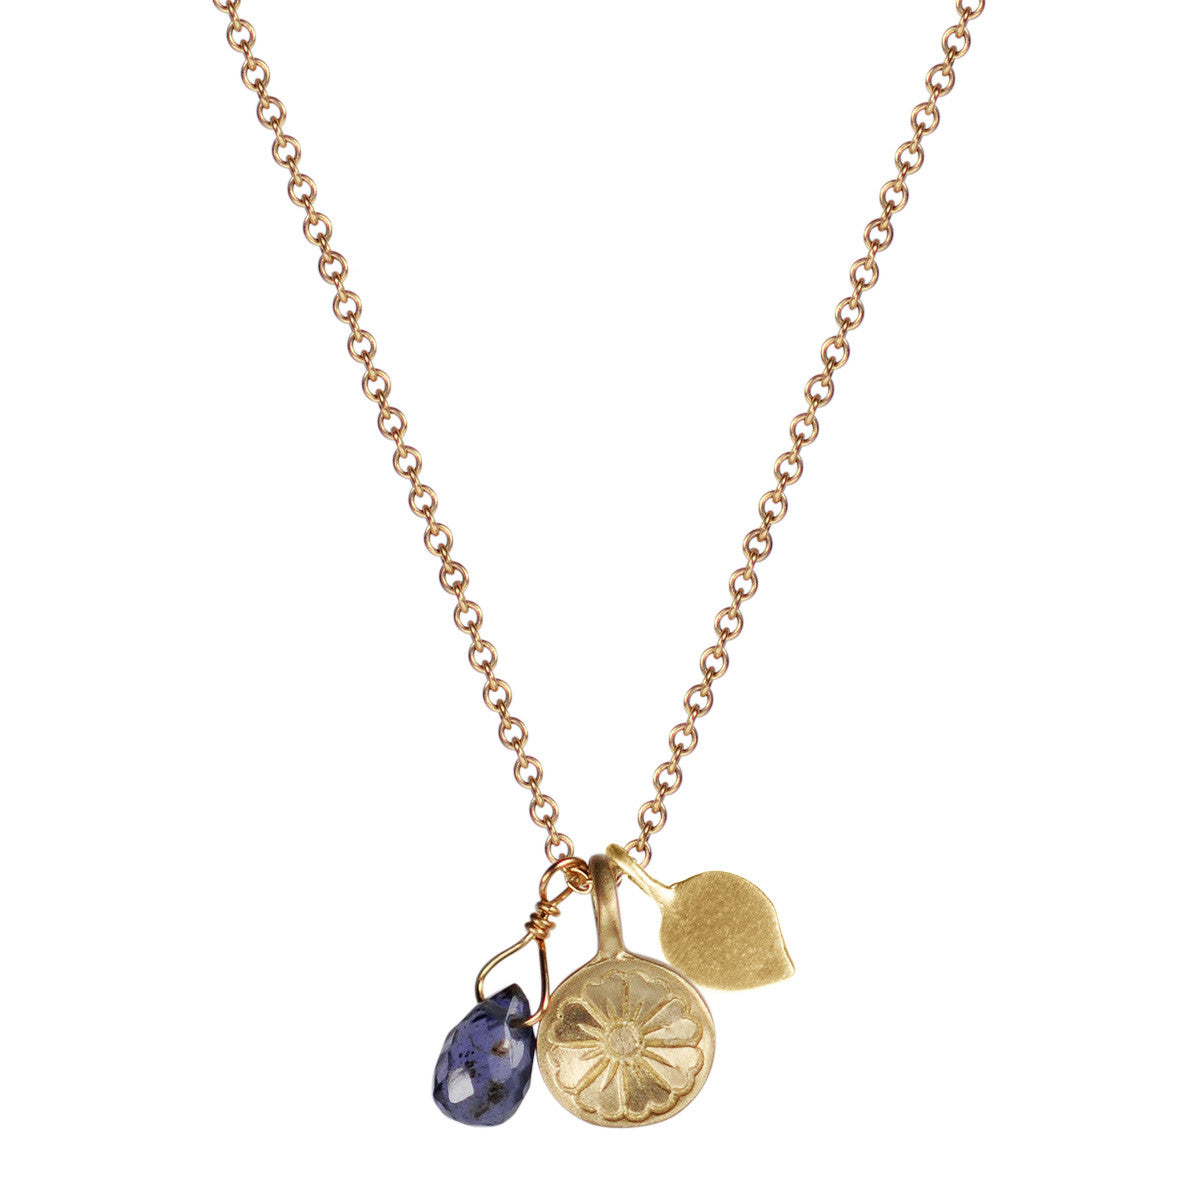 10K Gold Flower Trinket on Chain with Lotus Petal and Iolite Bead